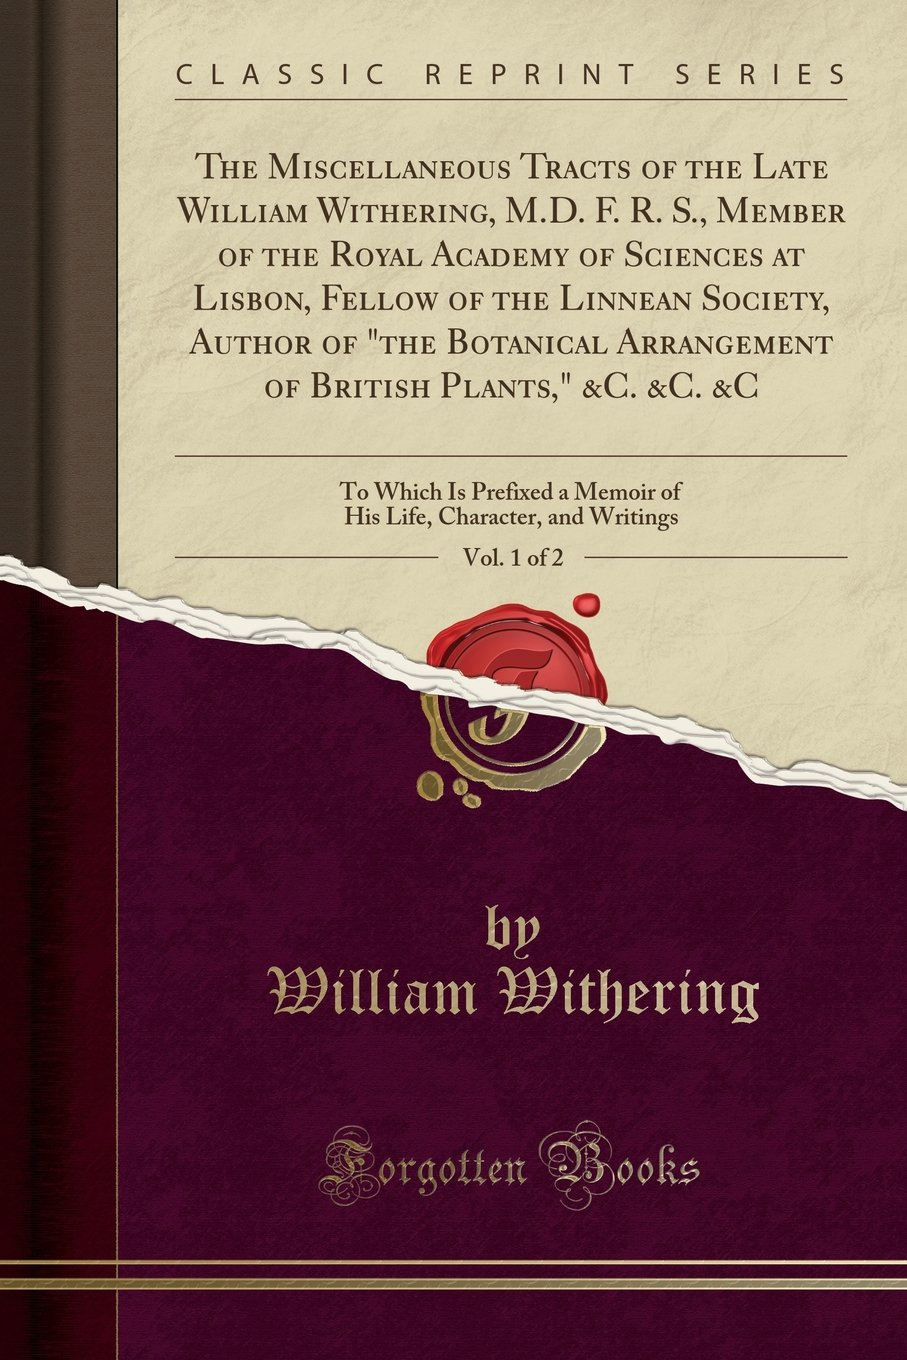 The Miscellaneous Tracts of the Late William Withering, M.D. F. R. S., Member of the Royal Academy of Sciences at Lisbon, Fellow of the Linnean ... &C. &C. &C, Vol. 1 of 2: To Which Is Prefixed pdf